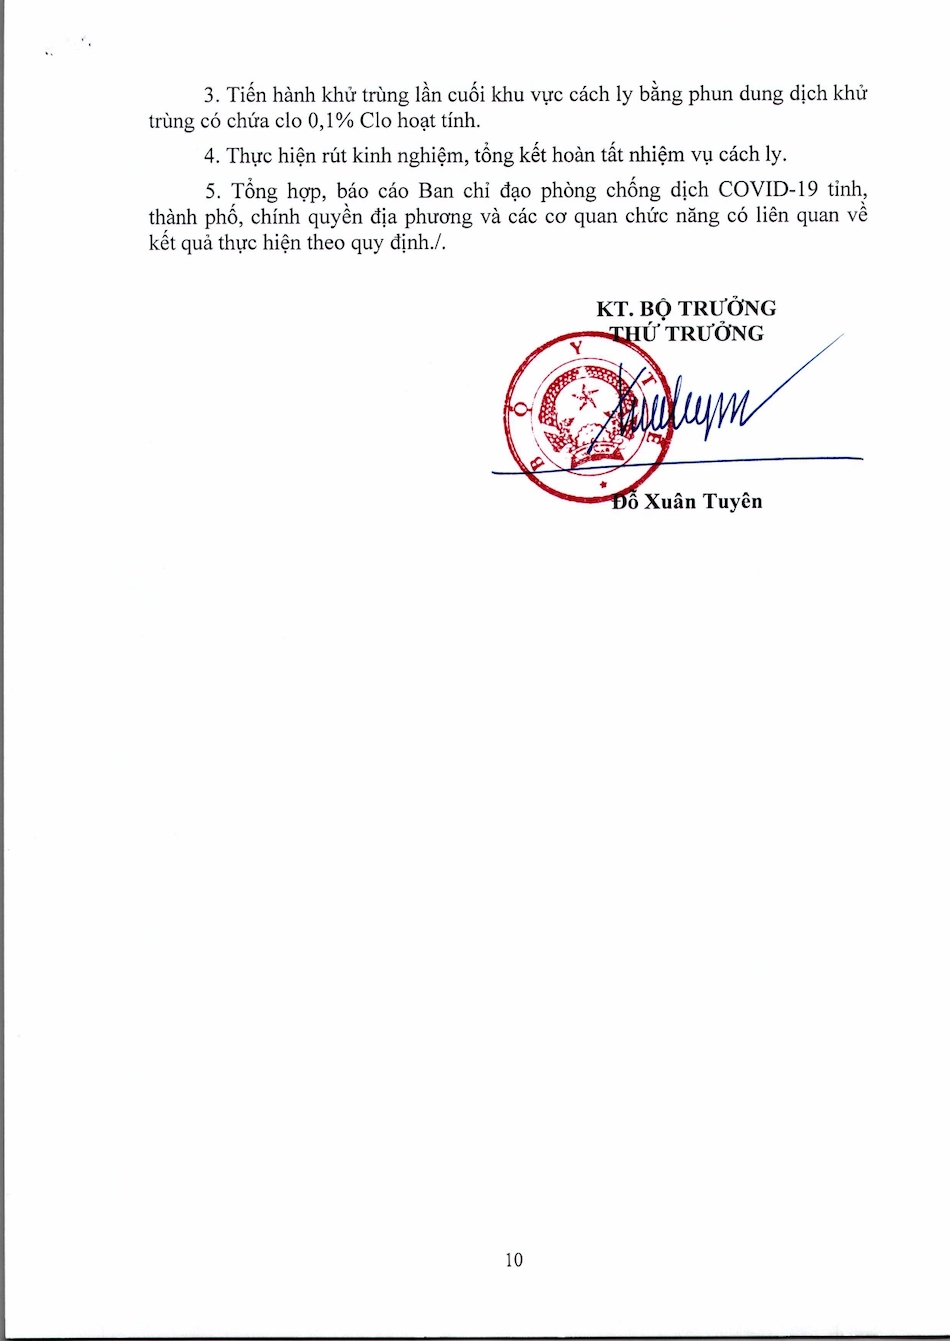 QD 878 2020 BYT ban hanh cach ly y te tai CSYT tap trung PC Corona_page-0011